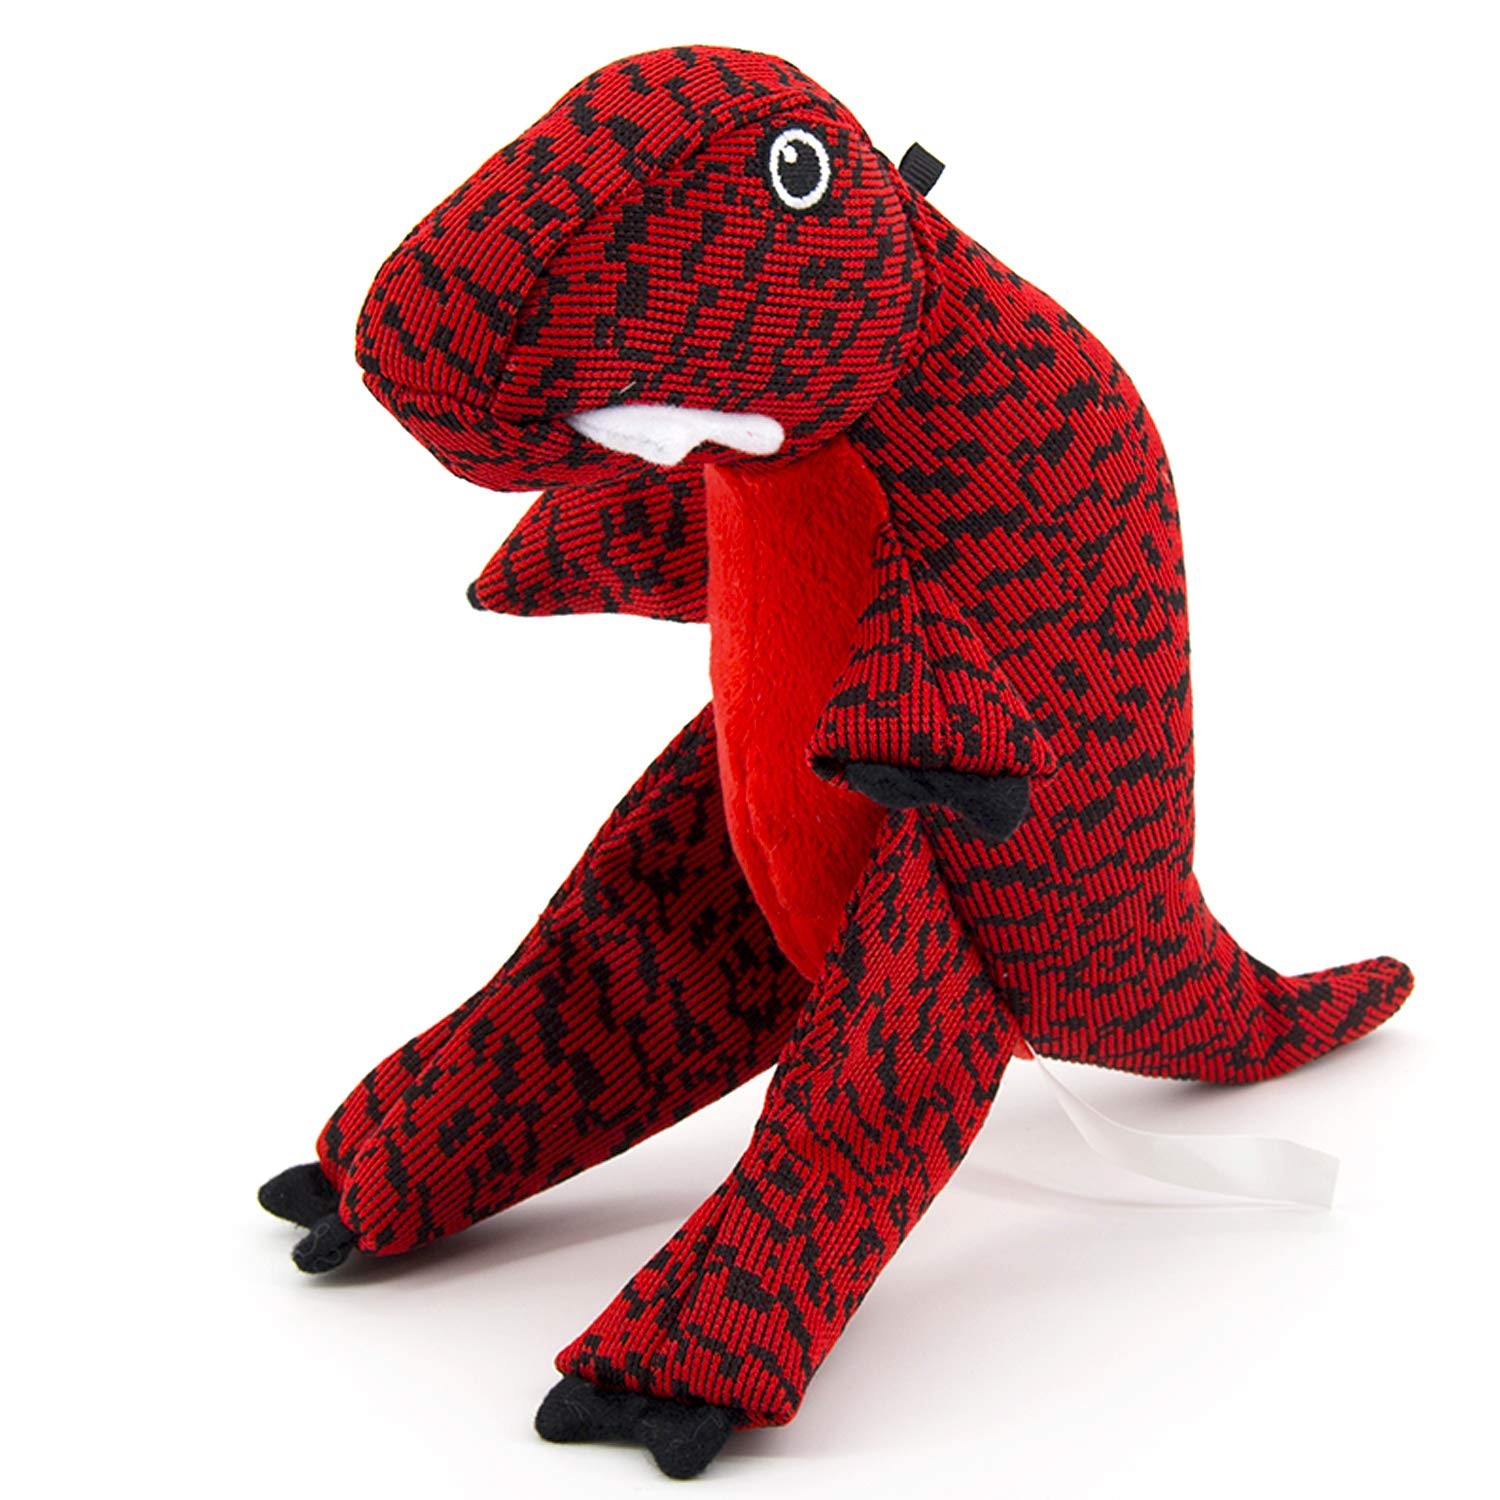 Longlasting dog toy for aggressive chewers